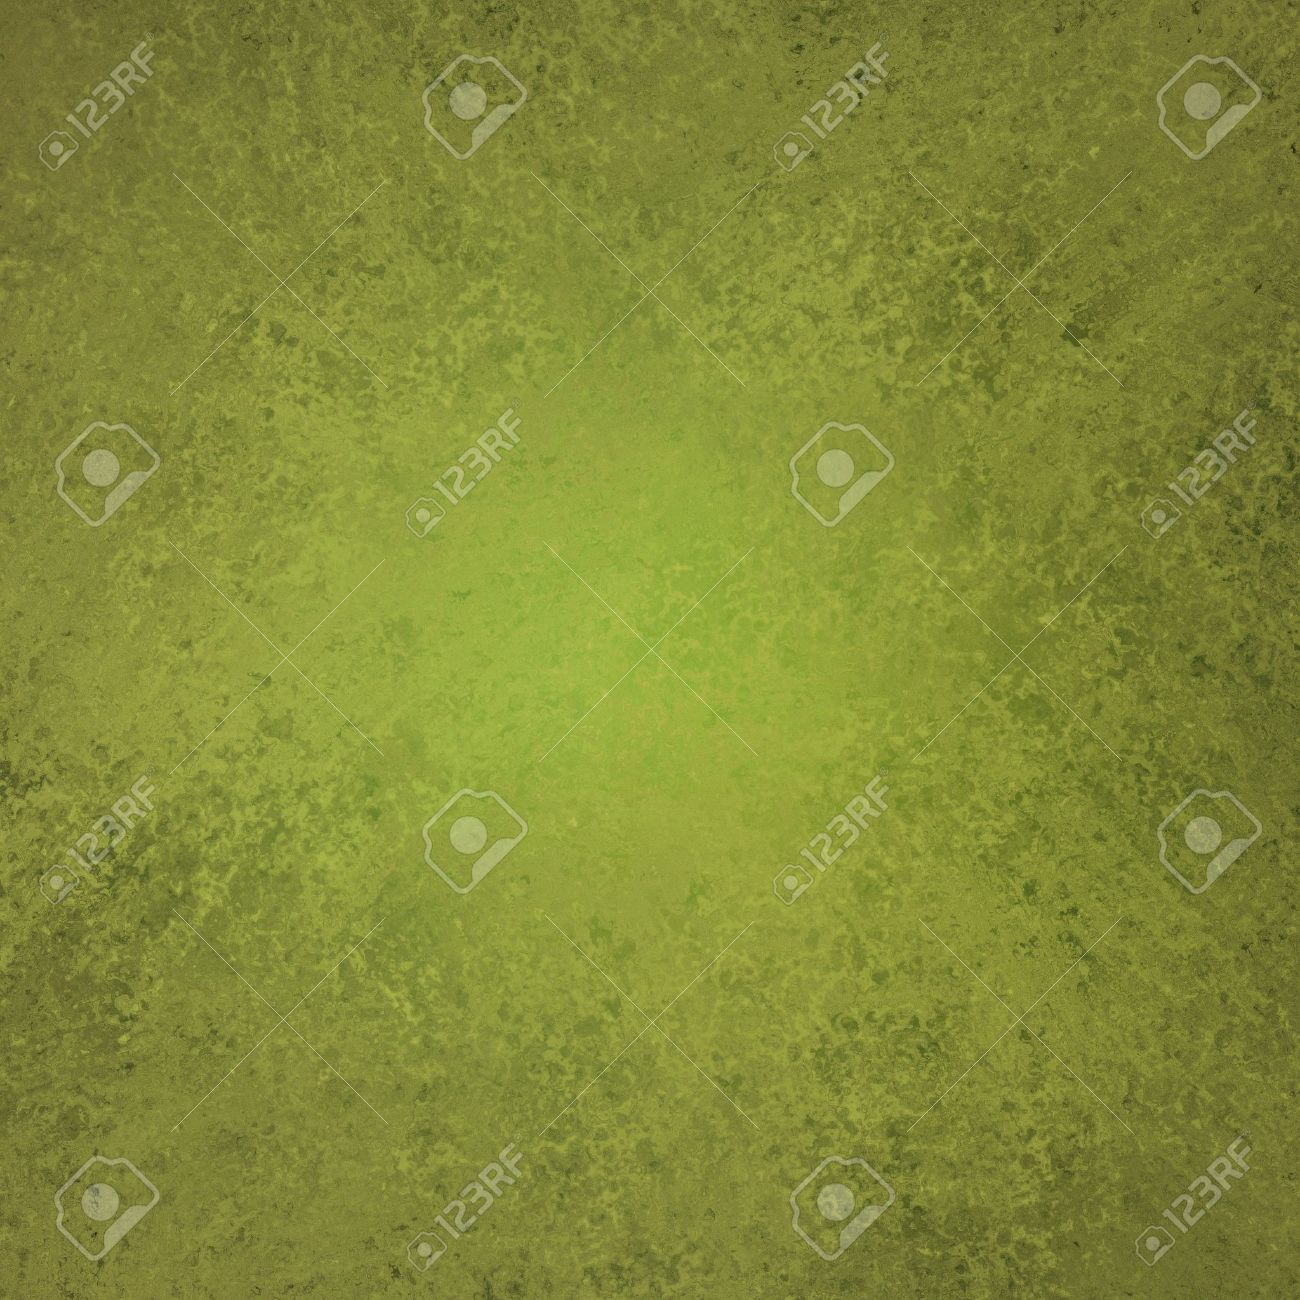 olive green background elegant design with vintage grunge background texture layout or green paper stationary or book cover of solid blank abstract paint wall or wallpaper for web background template Stock Photo - 19161401